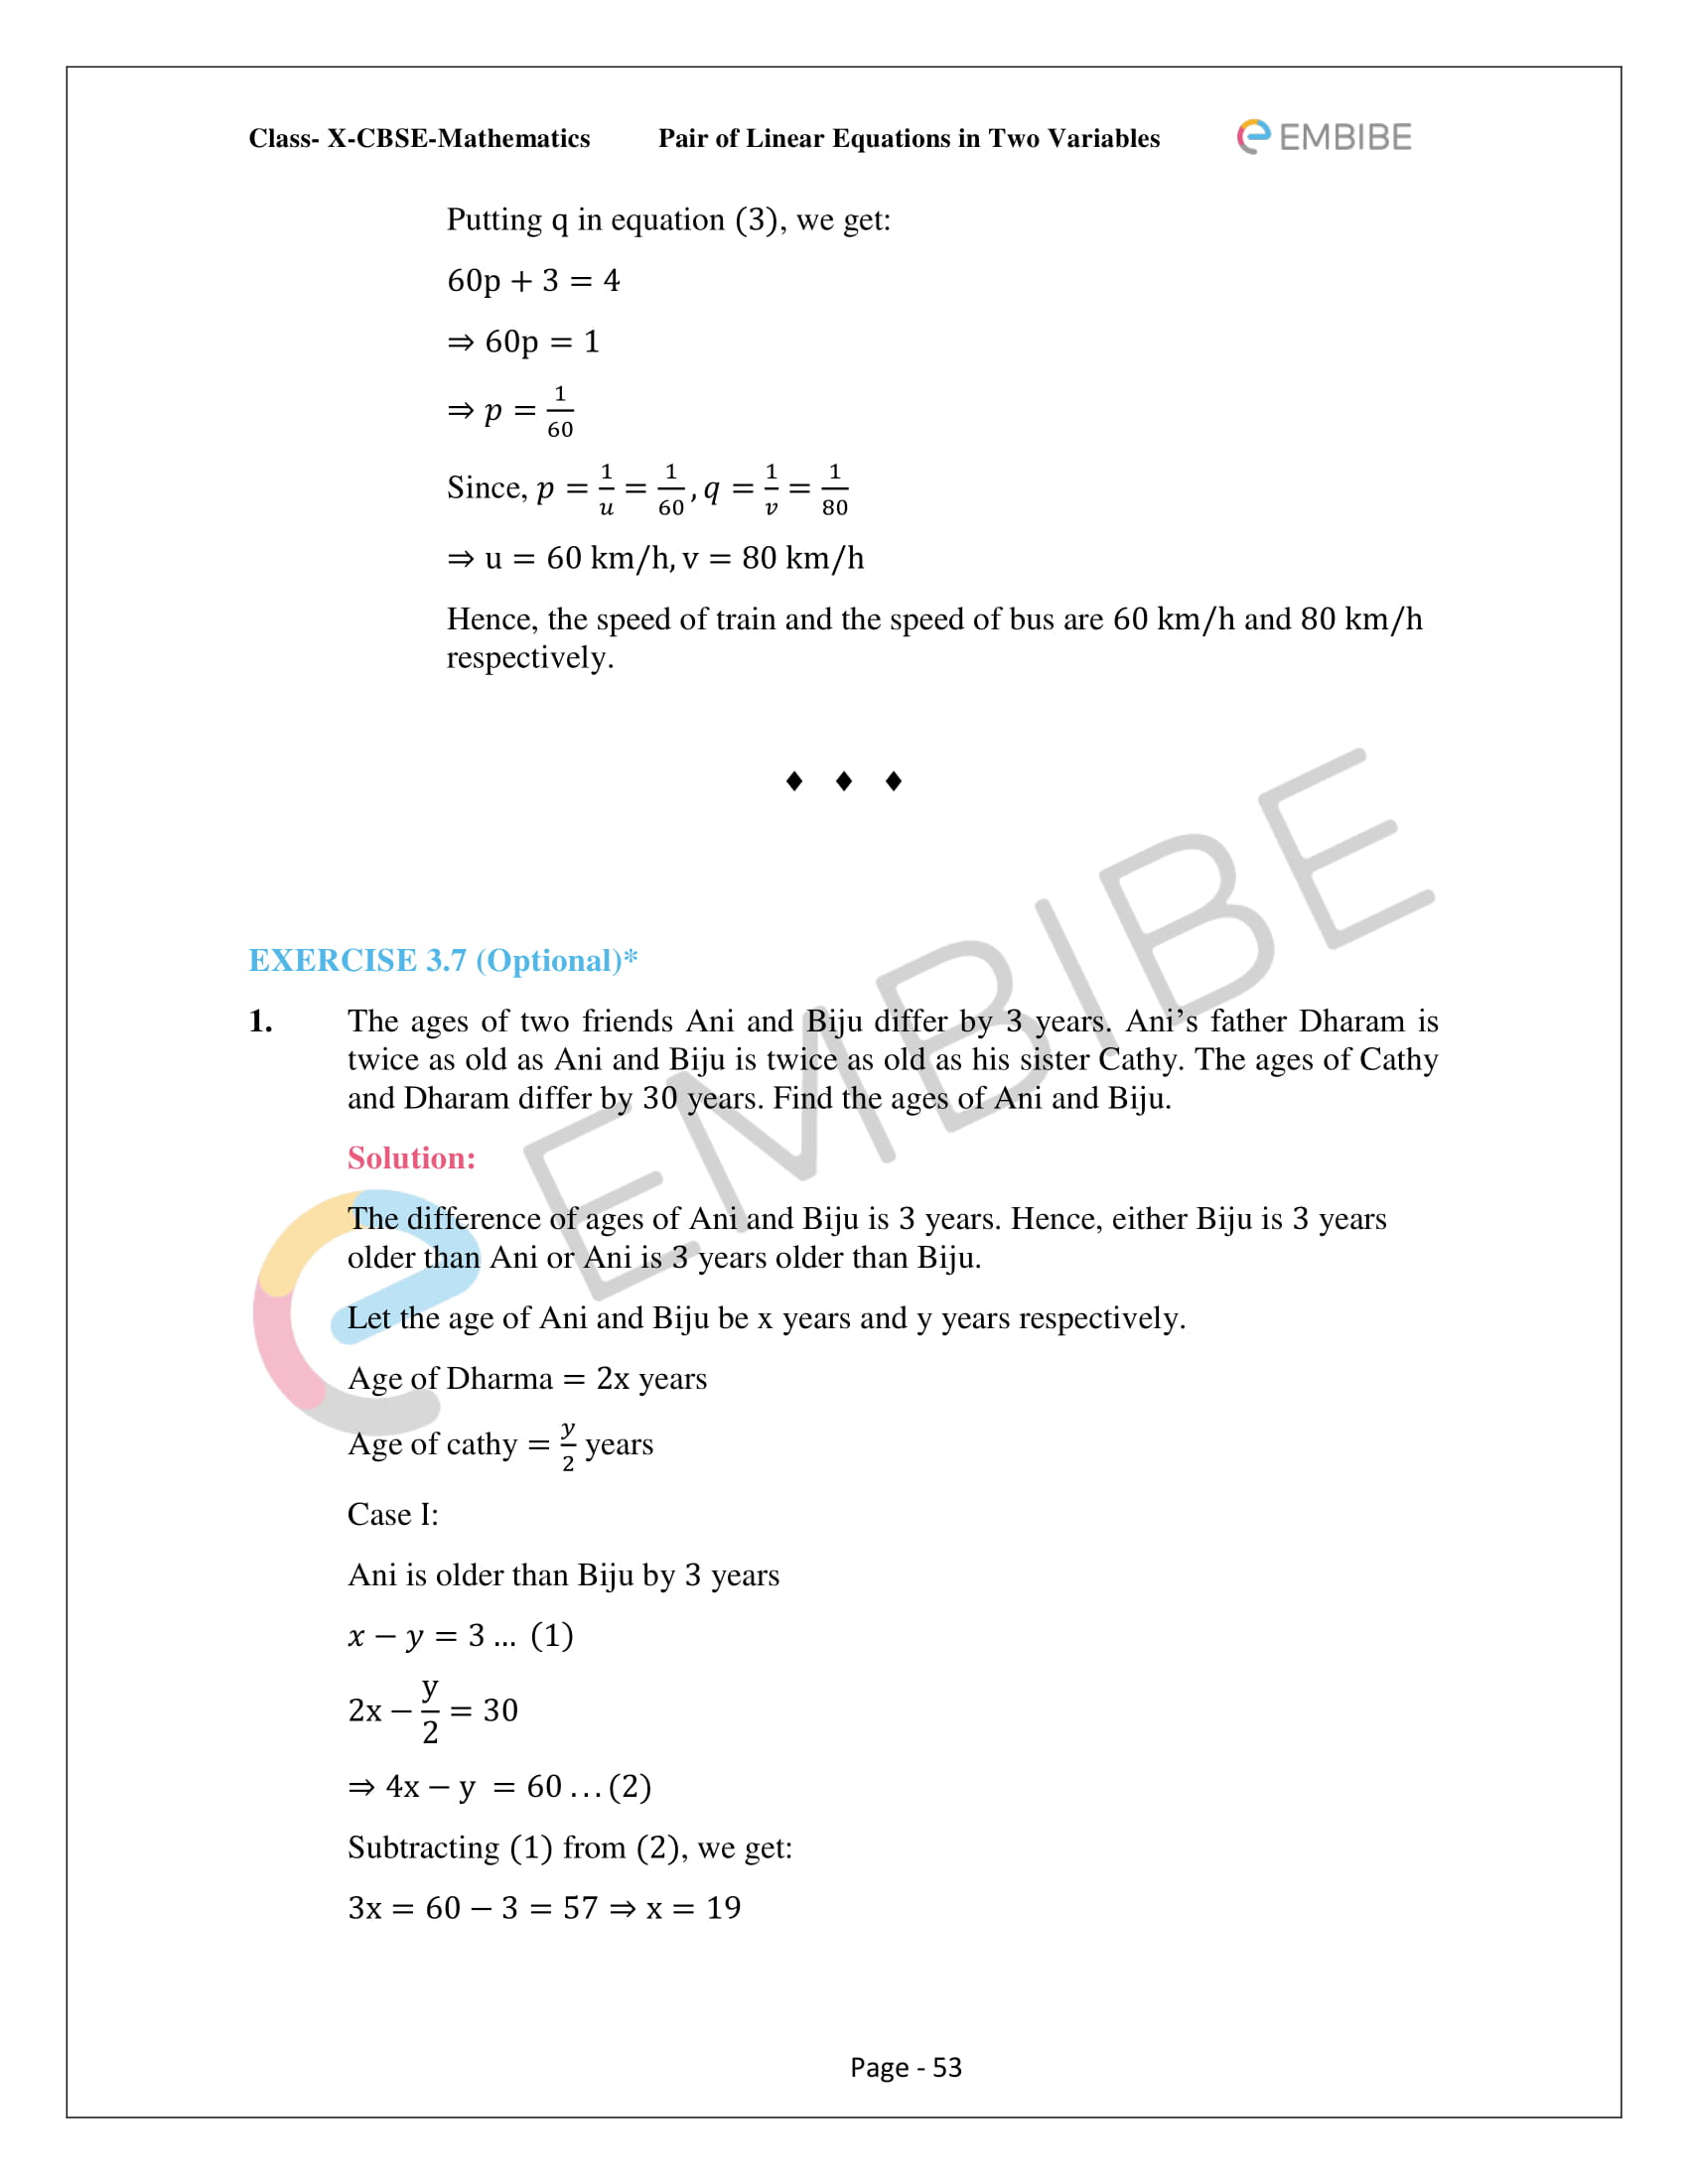 CBSE NCERT Solutions For Class 10 Maths Chapter 3 - Pair of Linear Equations In Two Variables - 53